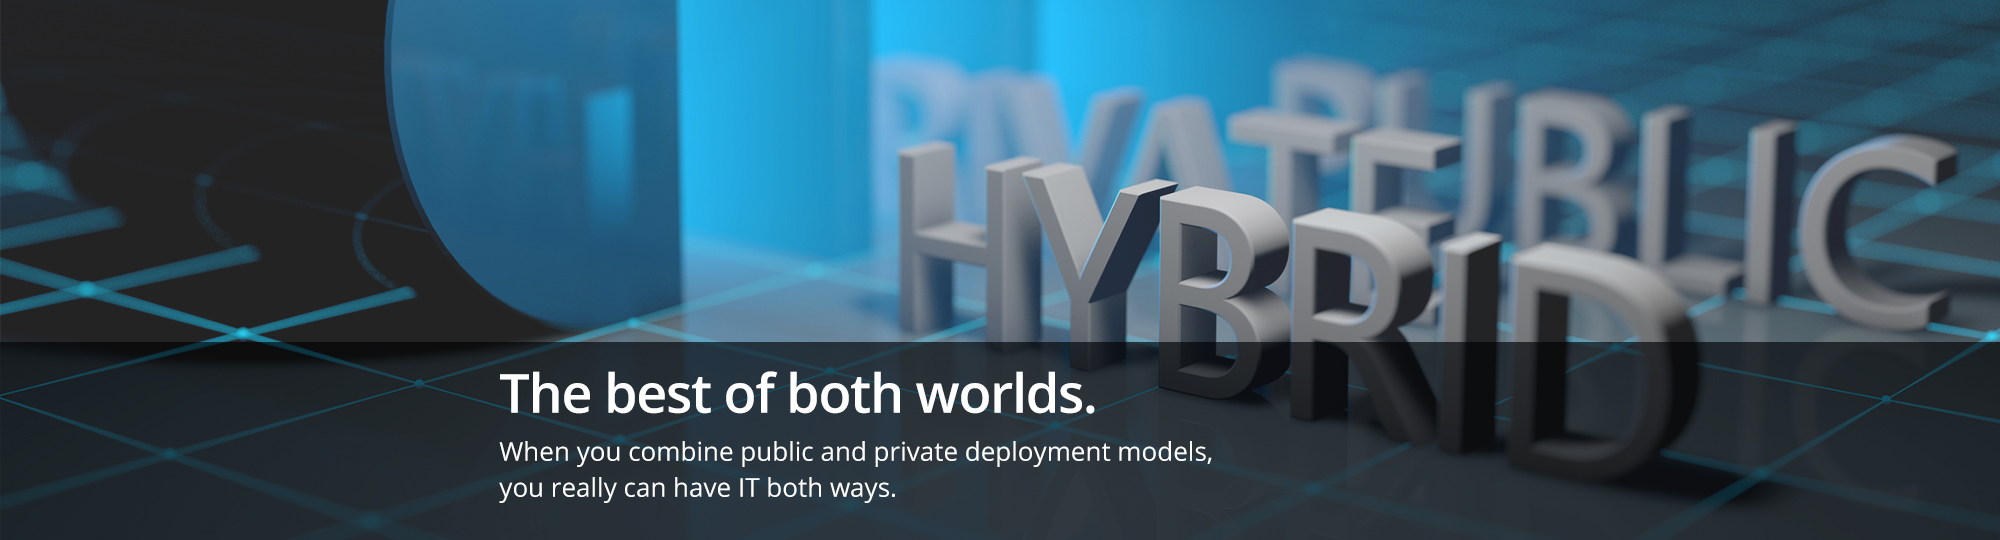 When you combine public and private deployment models, you really can have IT both ways.